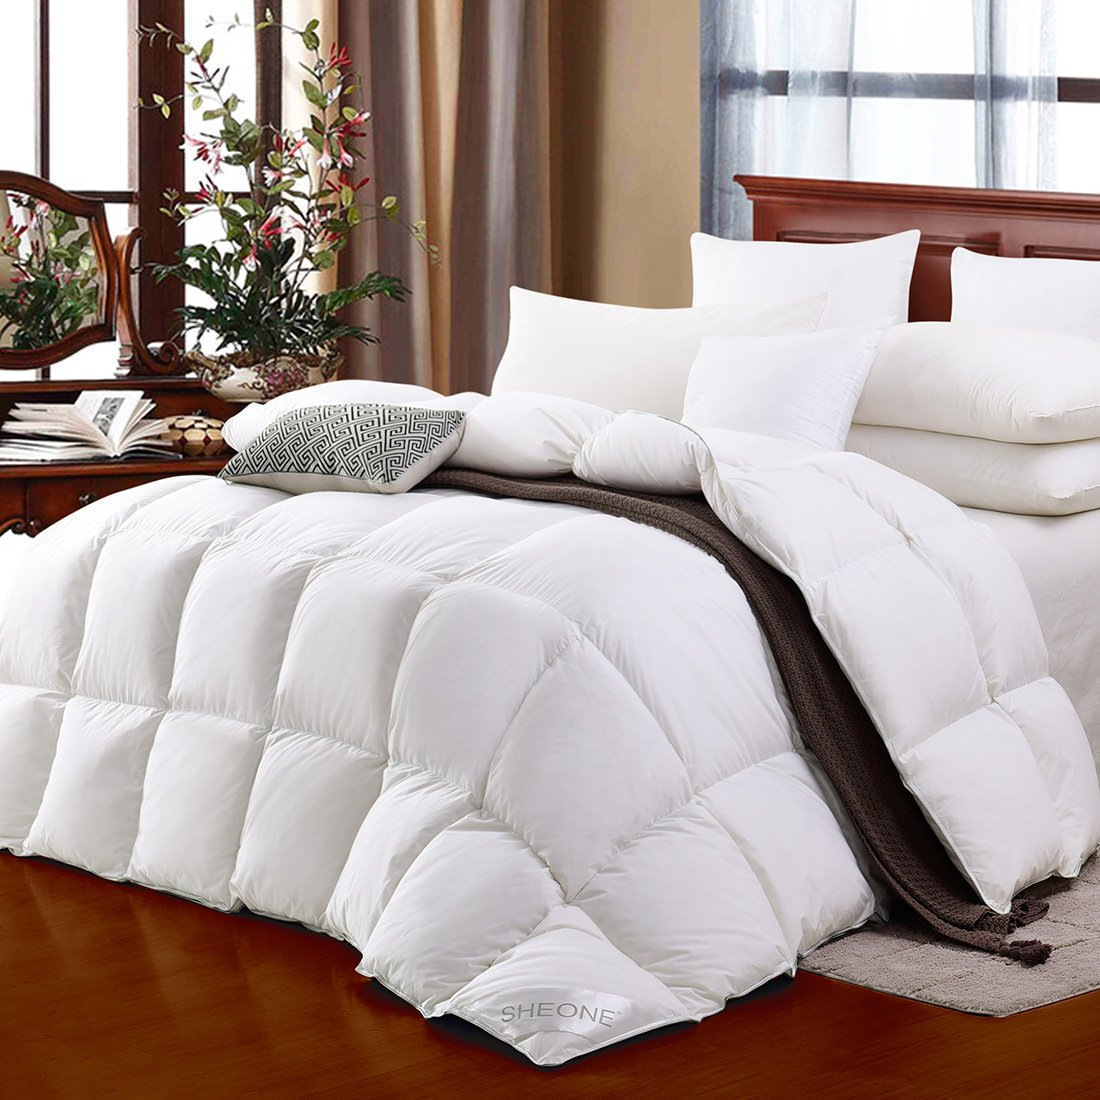 SHEONE All Seasons Lightweight White Goose Down Comforter-650 Fill Power-100% Cotton Shell Down Proof-Solid White Hypo-allergenic Duvet Insert With Tabs (King)